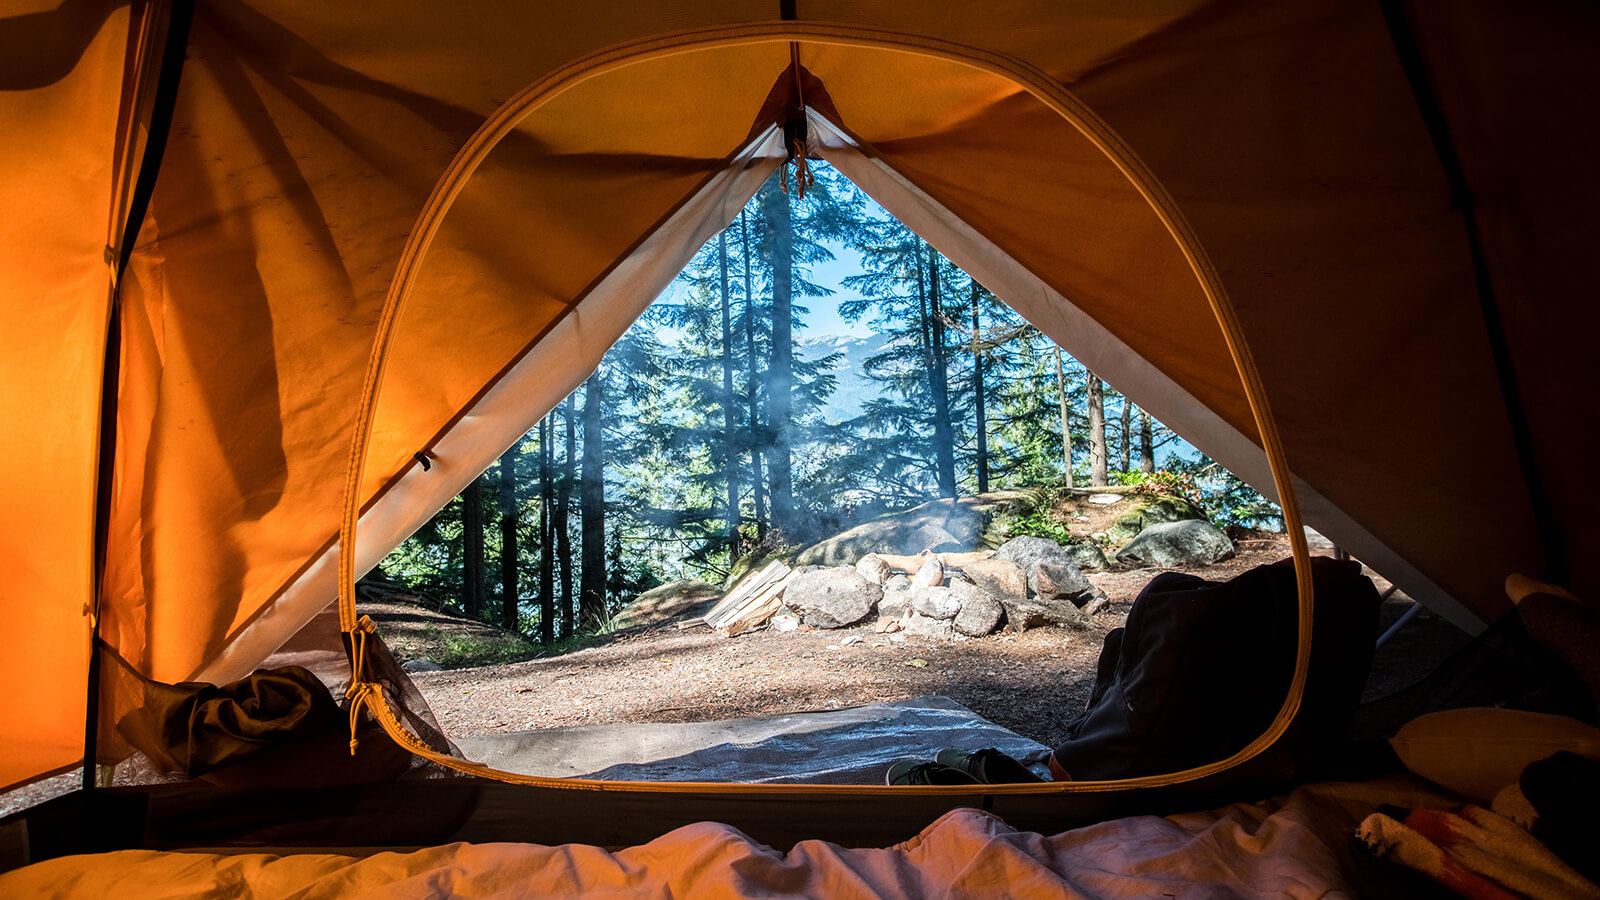 Camping in a tent